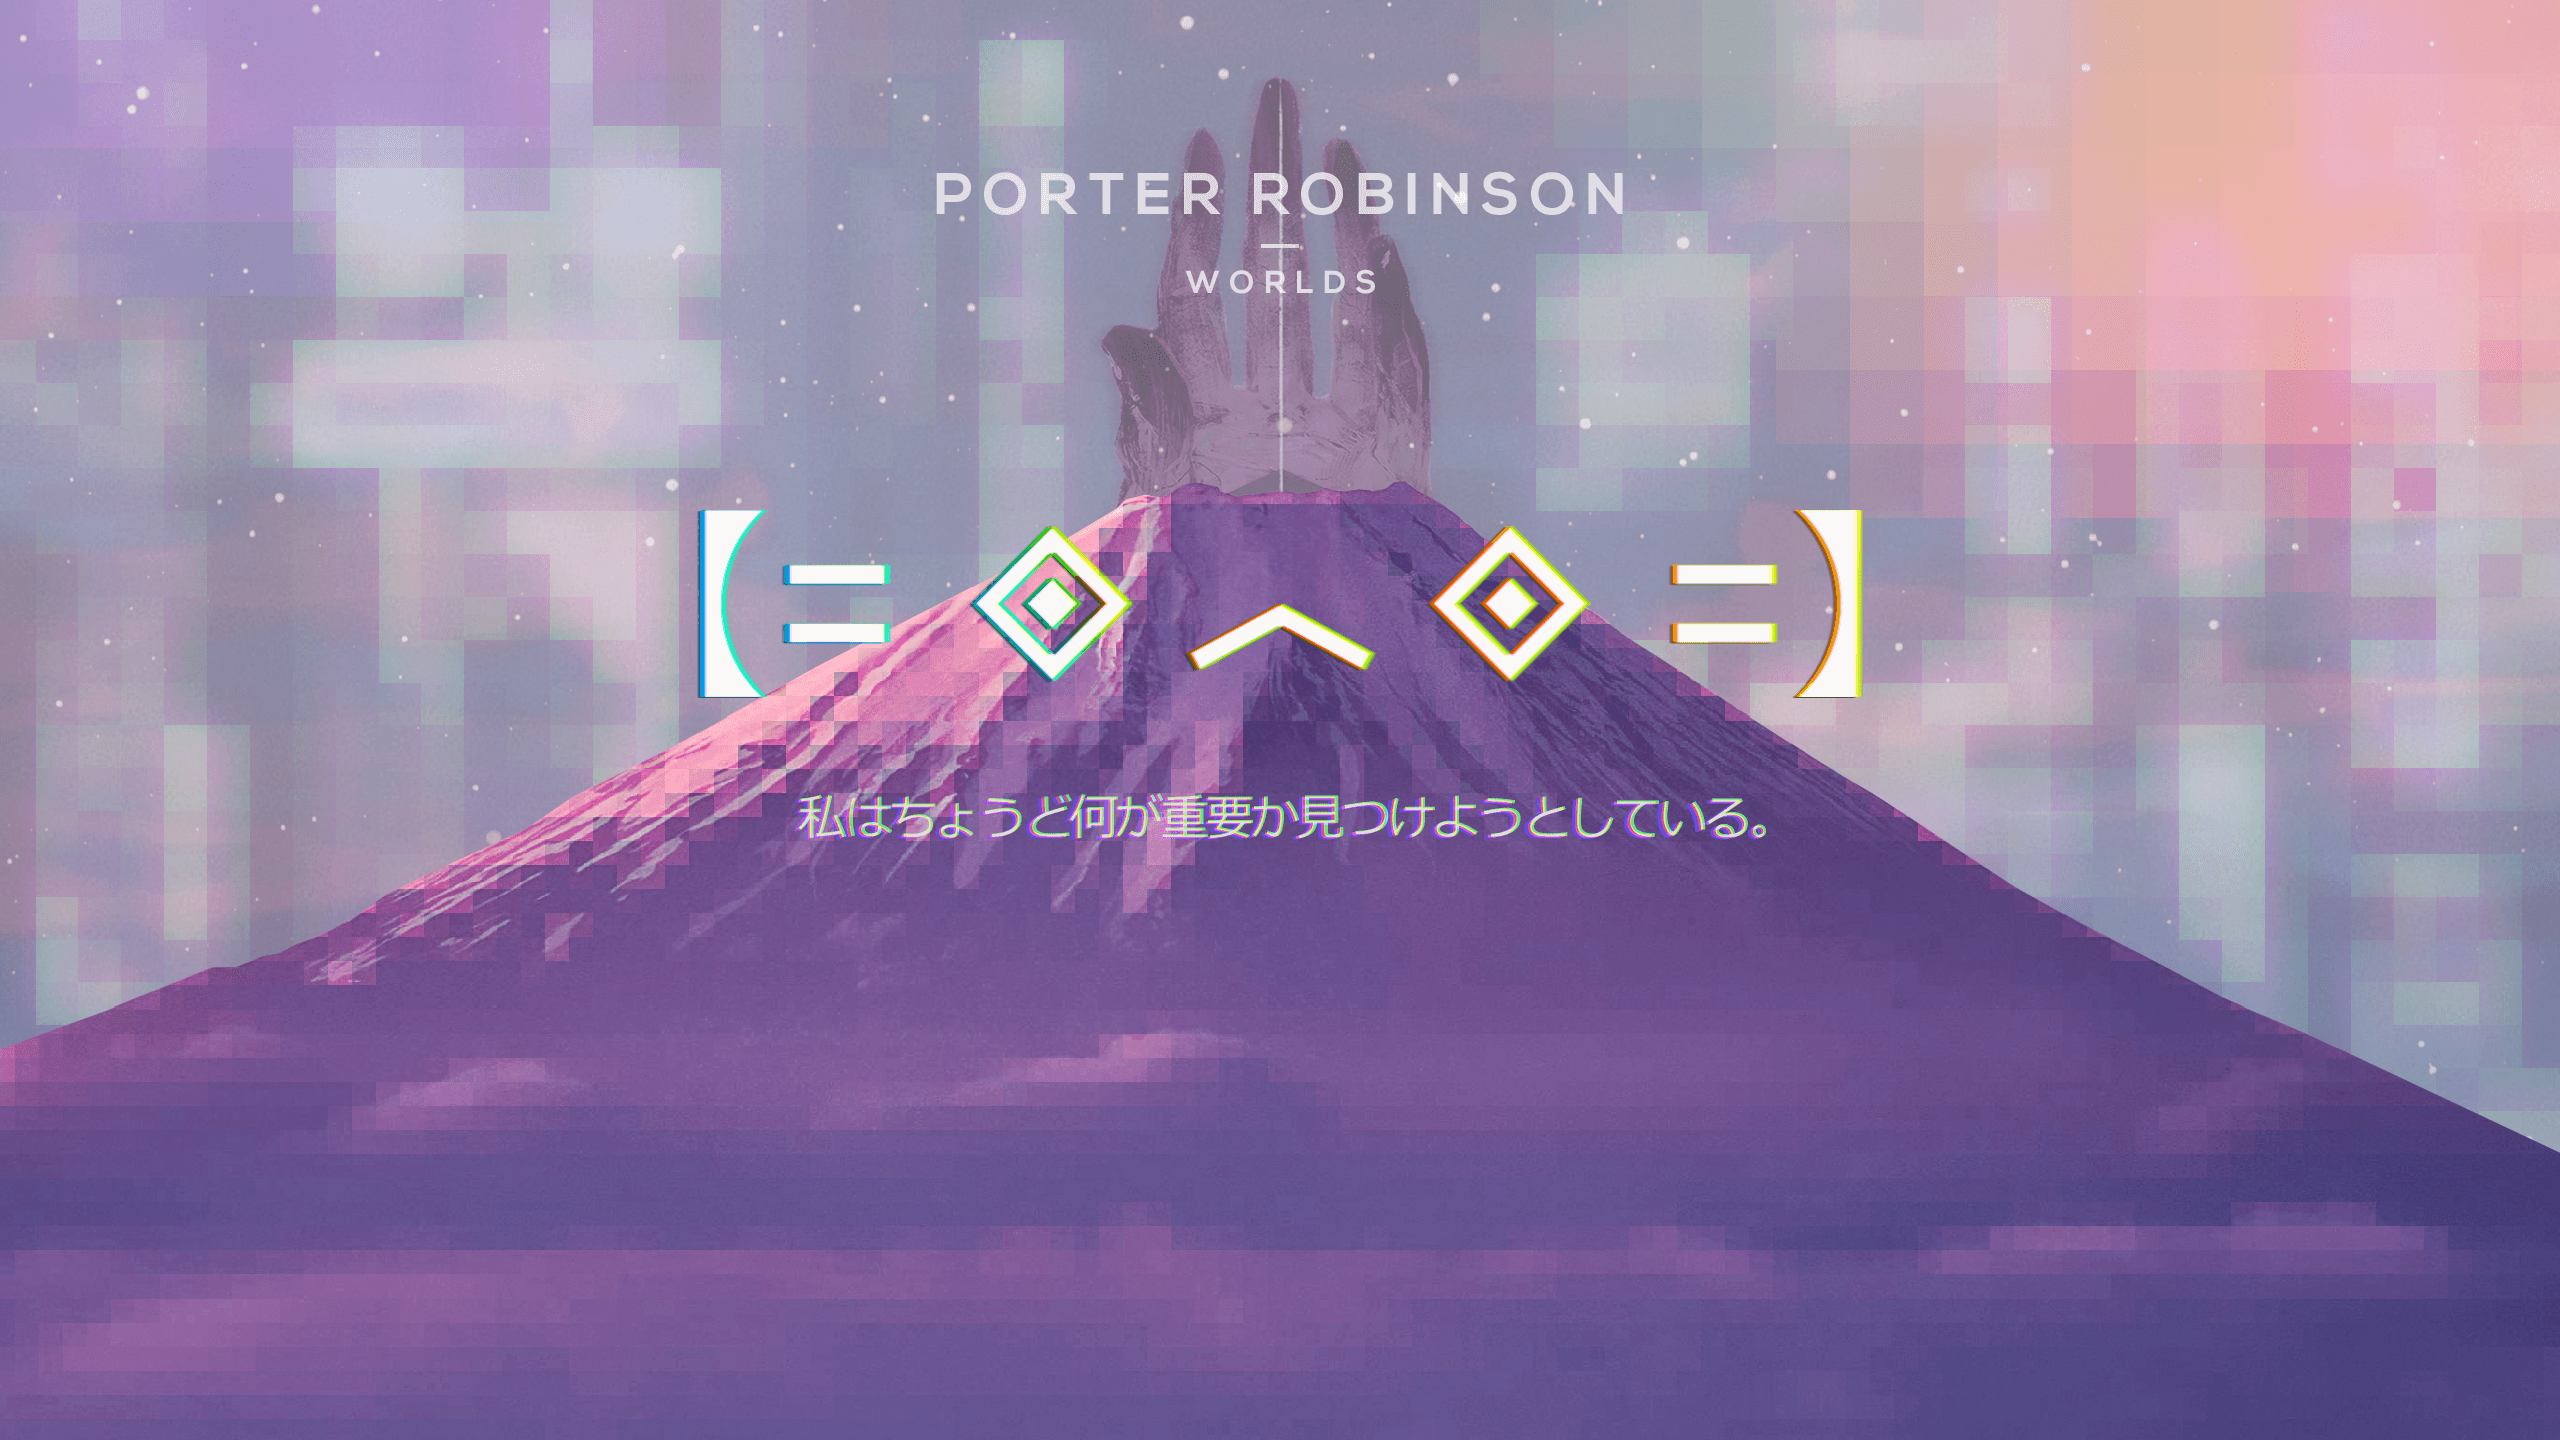 porter robinson cover wallpaper background hd 64702